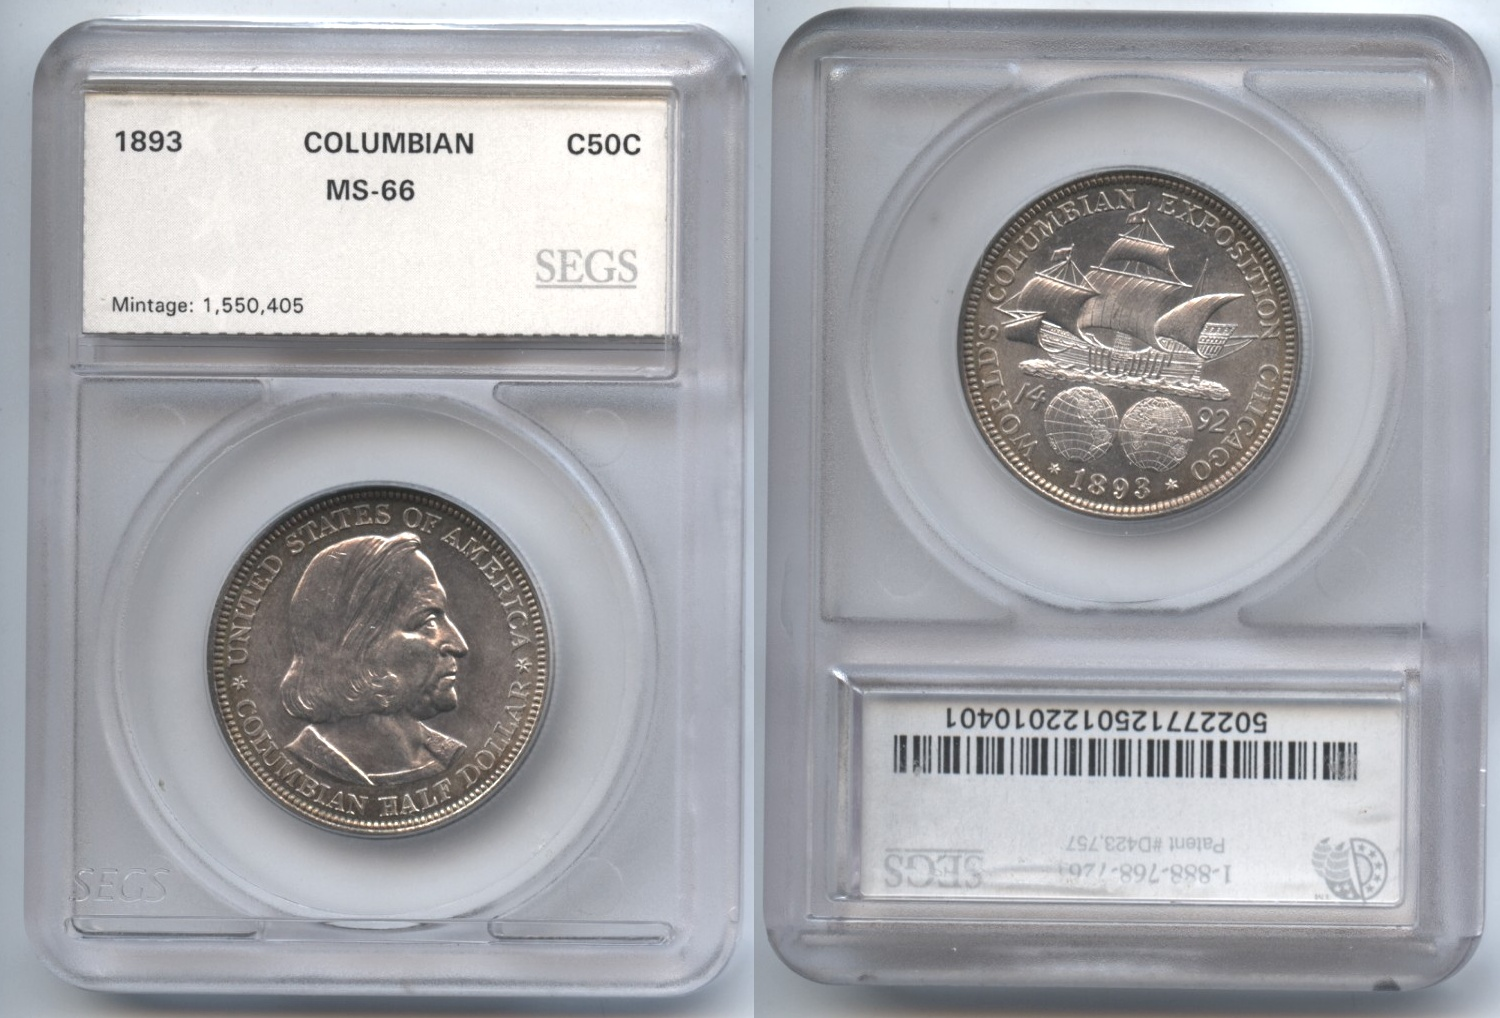 1893 Columbian Commemorative Half Dollar SEGS MS-66